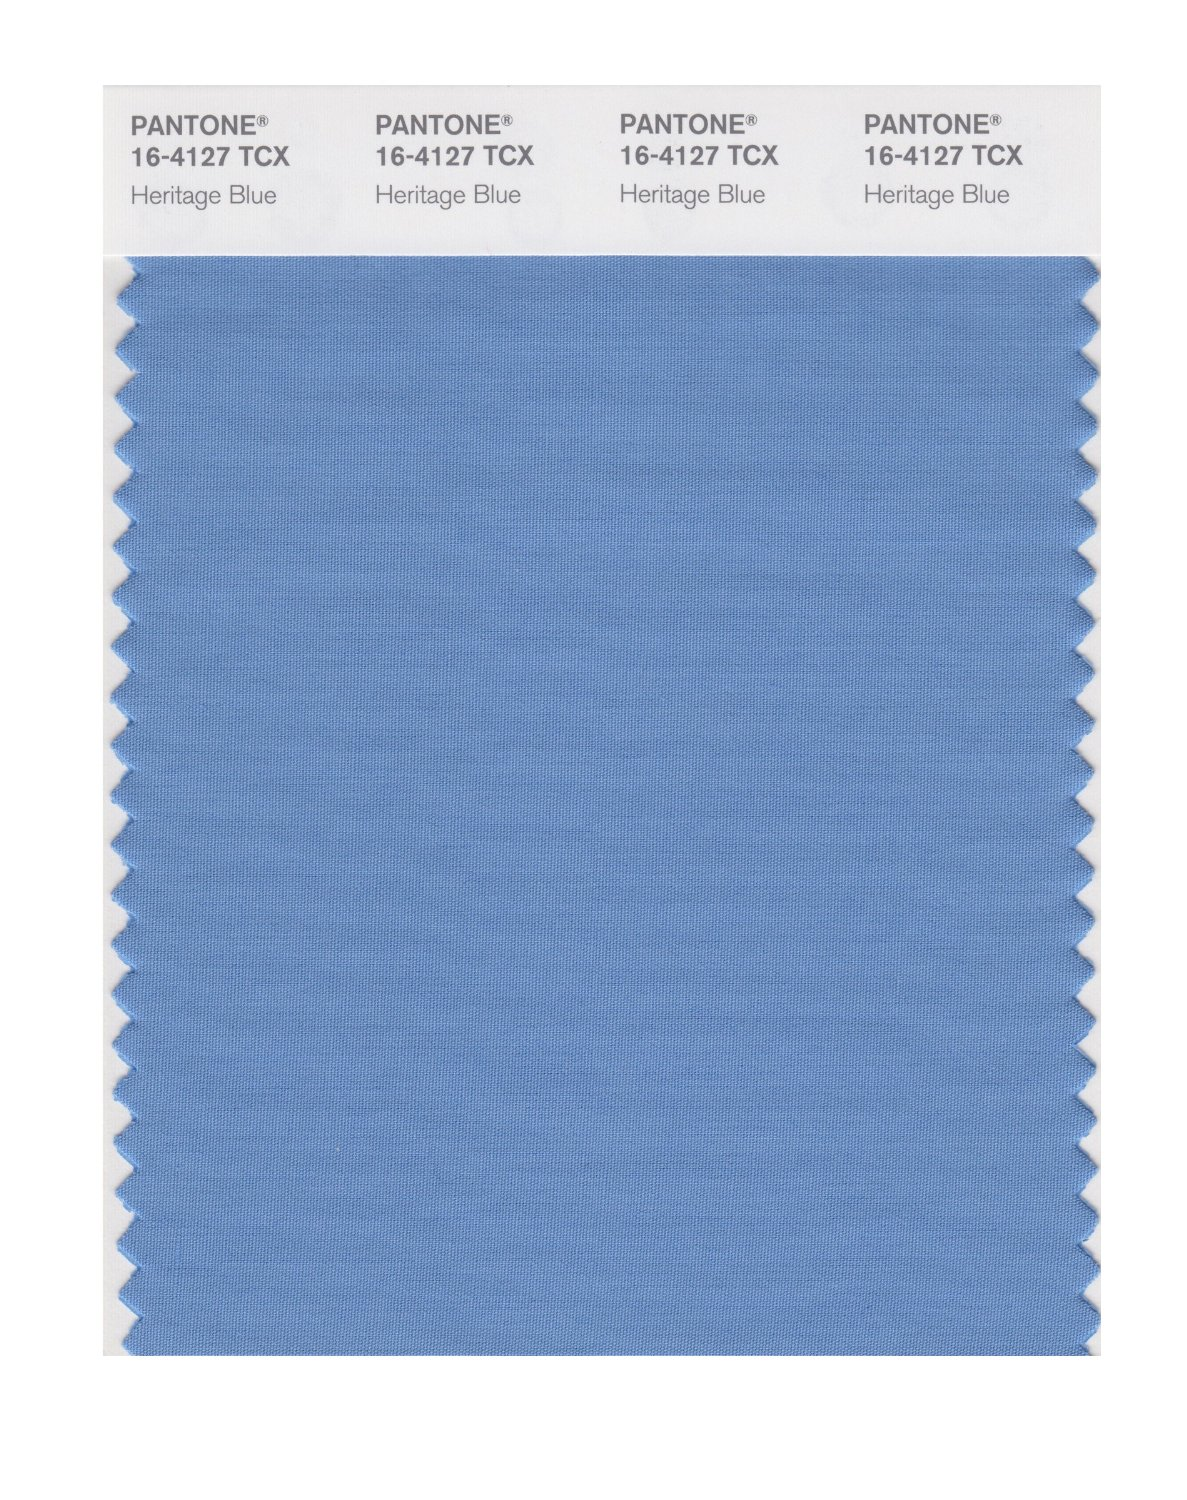 Pantone Smart Swatch 16-4127 Heritage Blue